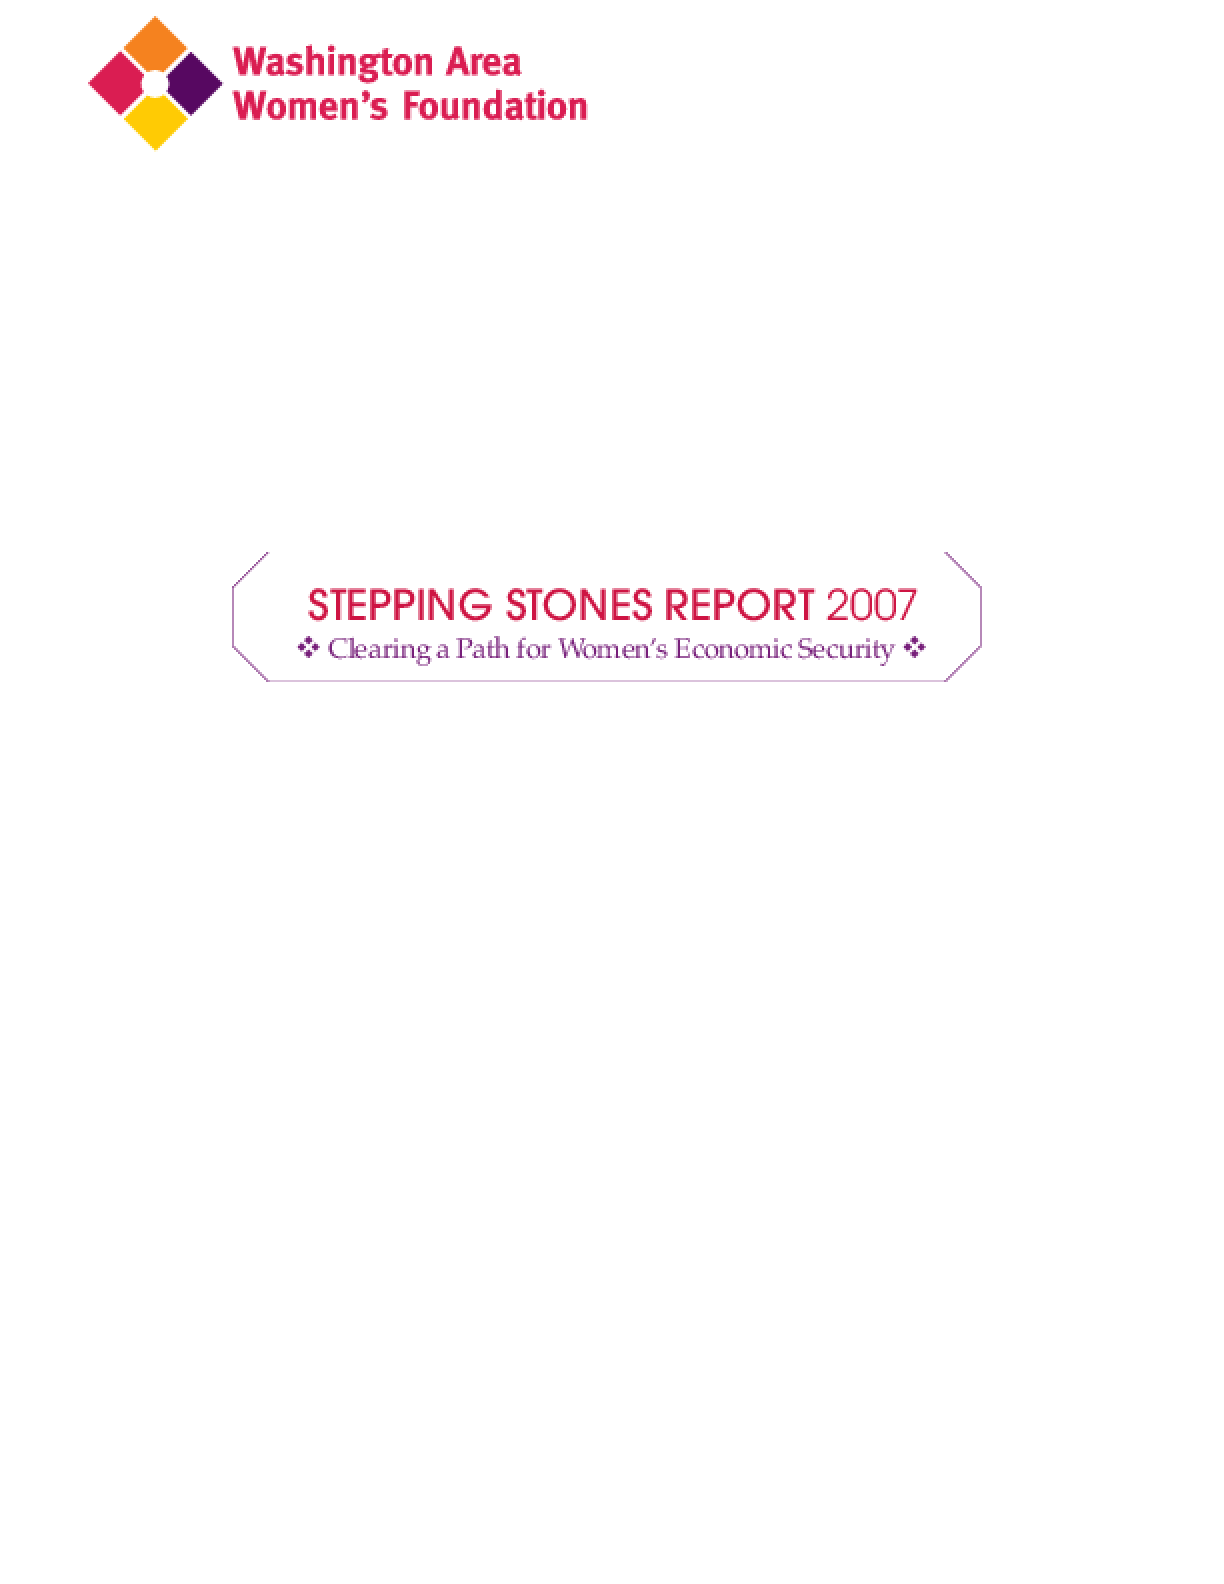 Stepping Stones Report 2007: Clearing a Path for Women's Economic Security